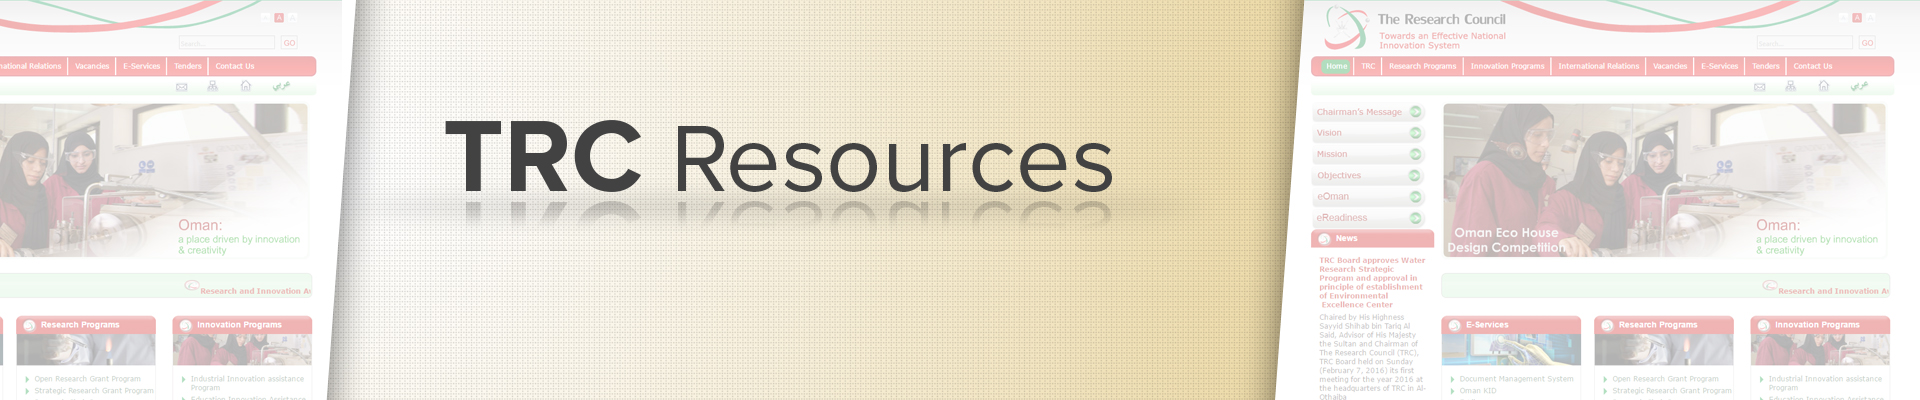 TRC Resources